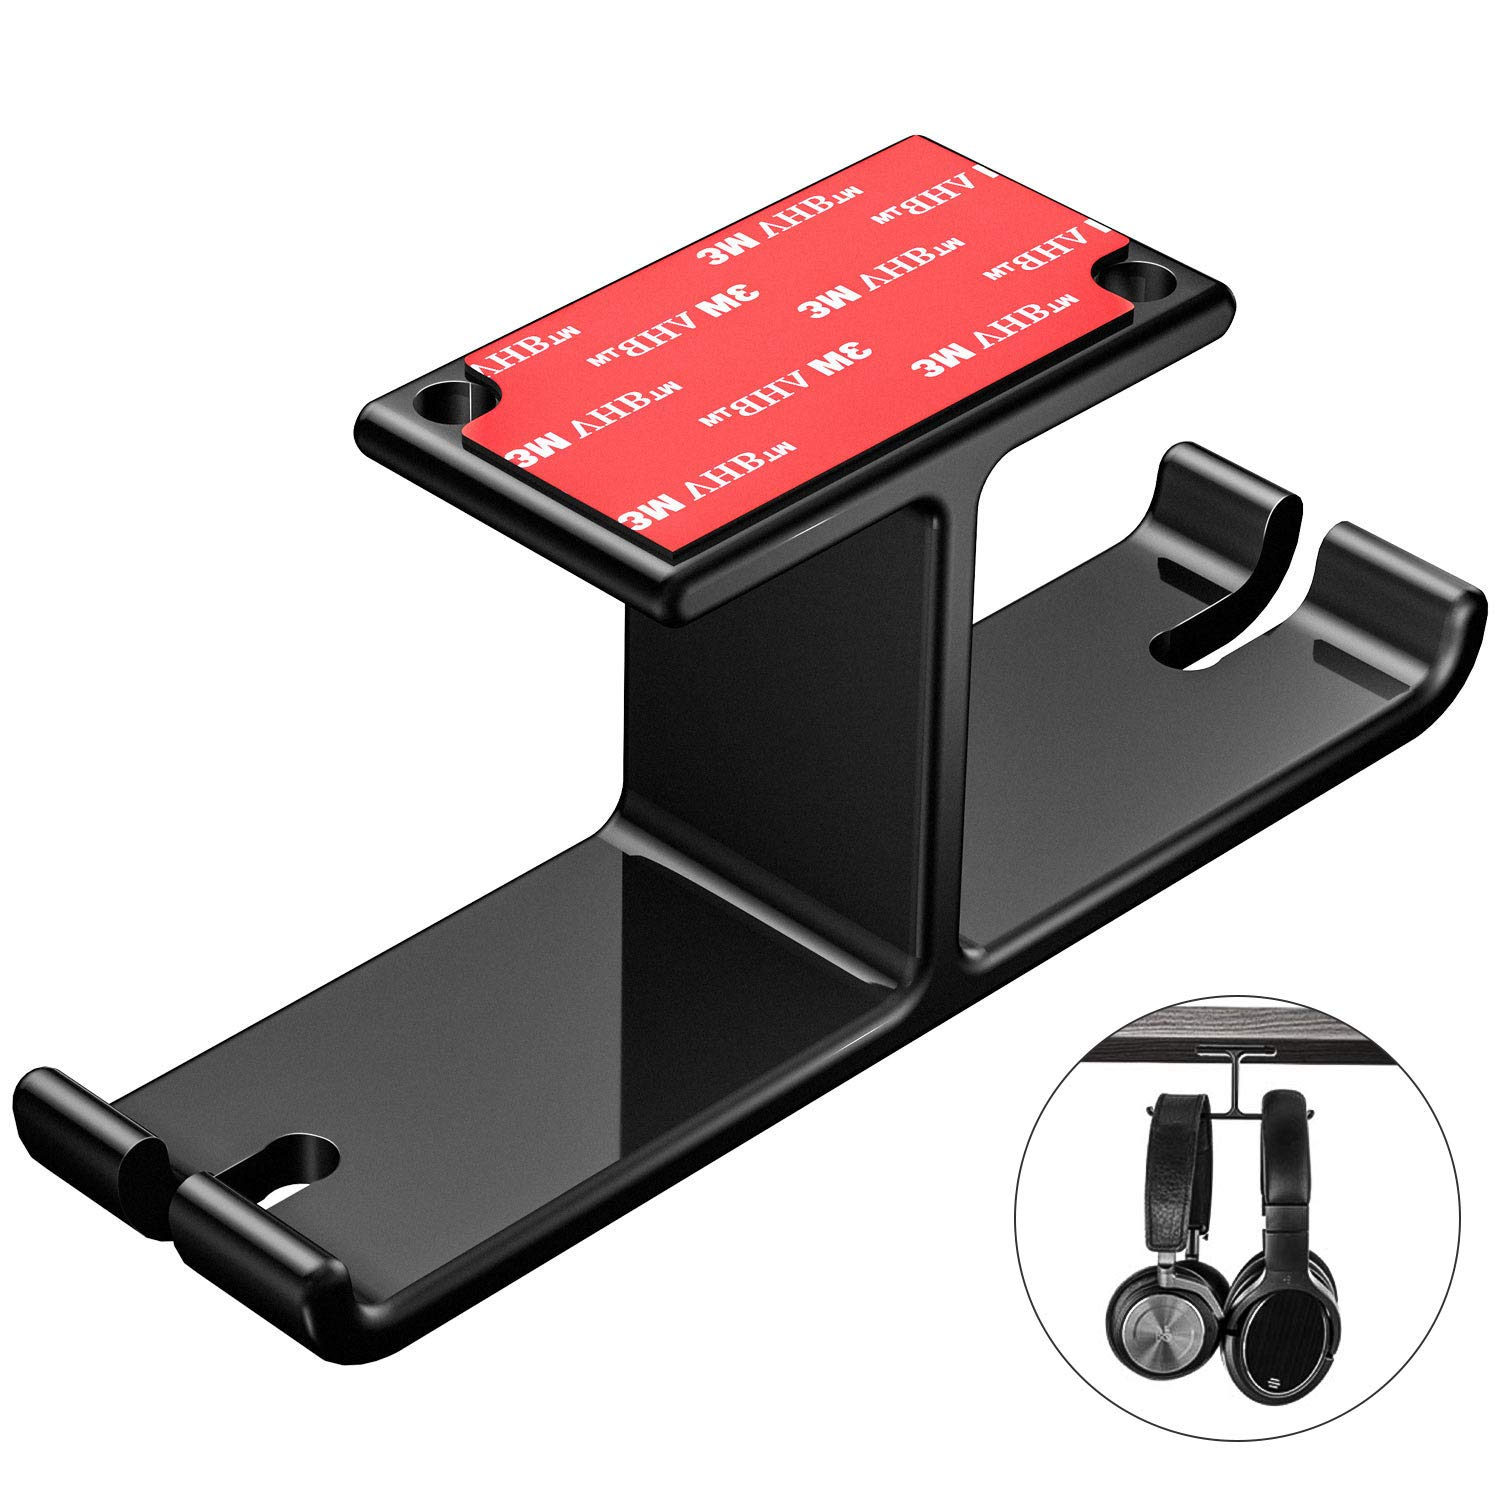 Headphone Hanger Headset Holder New bee Under Desk Dual Aluminum Headphone Hook Mount with Cable Organizer for All Headphones